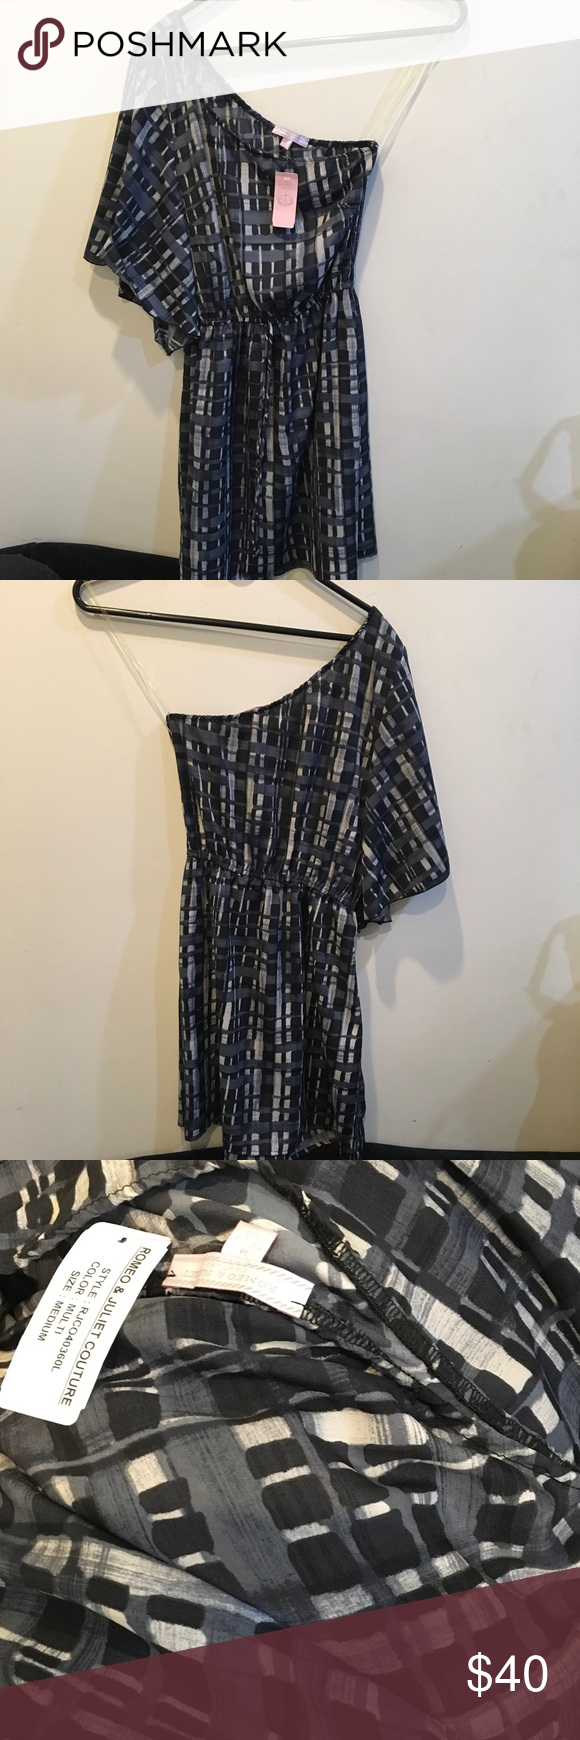 NWT Romeo & Juliet Couture One Shoulder Dress New with tags Dress with one shoulder and a billowy mid length sleeve - Abstract and very cute- short style and has never been worn. Romeo & Juliet Couture Dresses One Shoulder